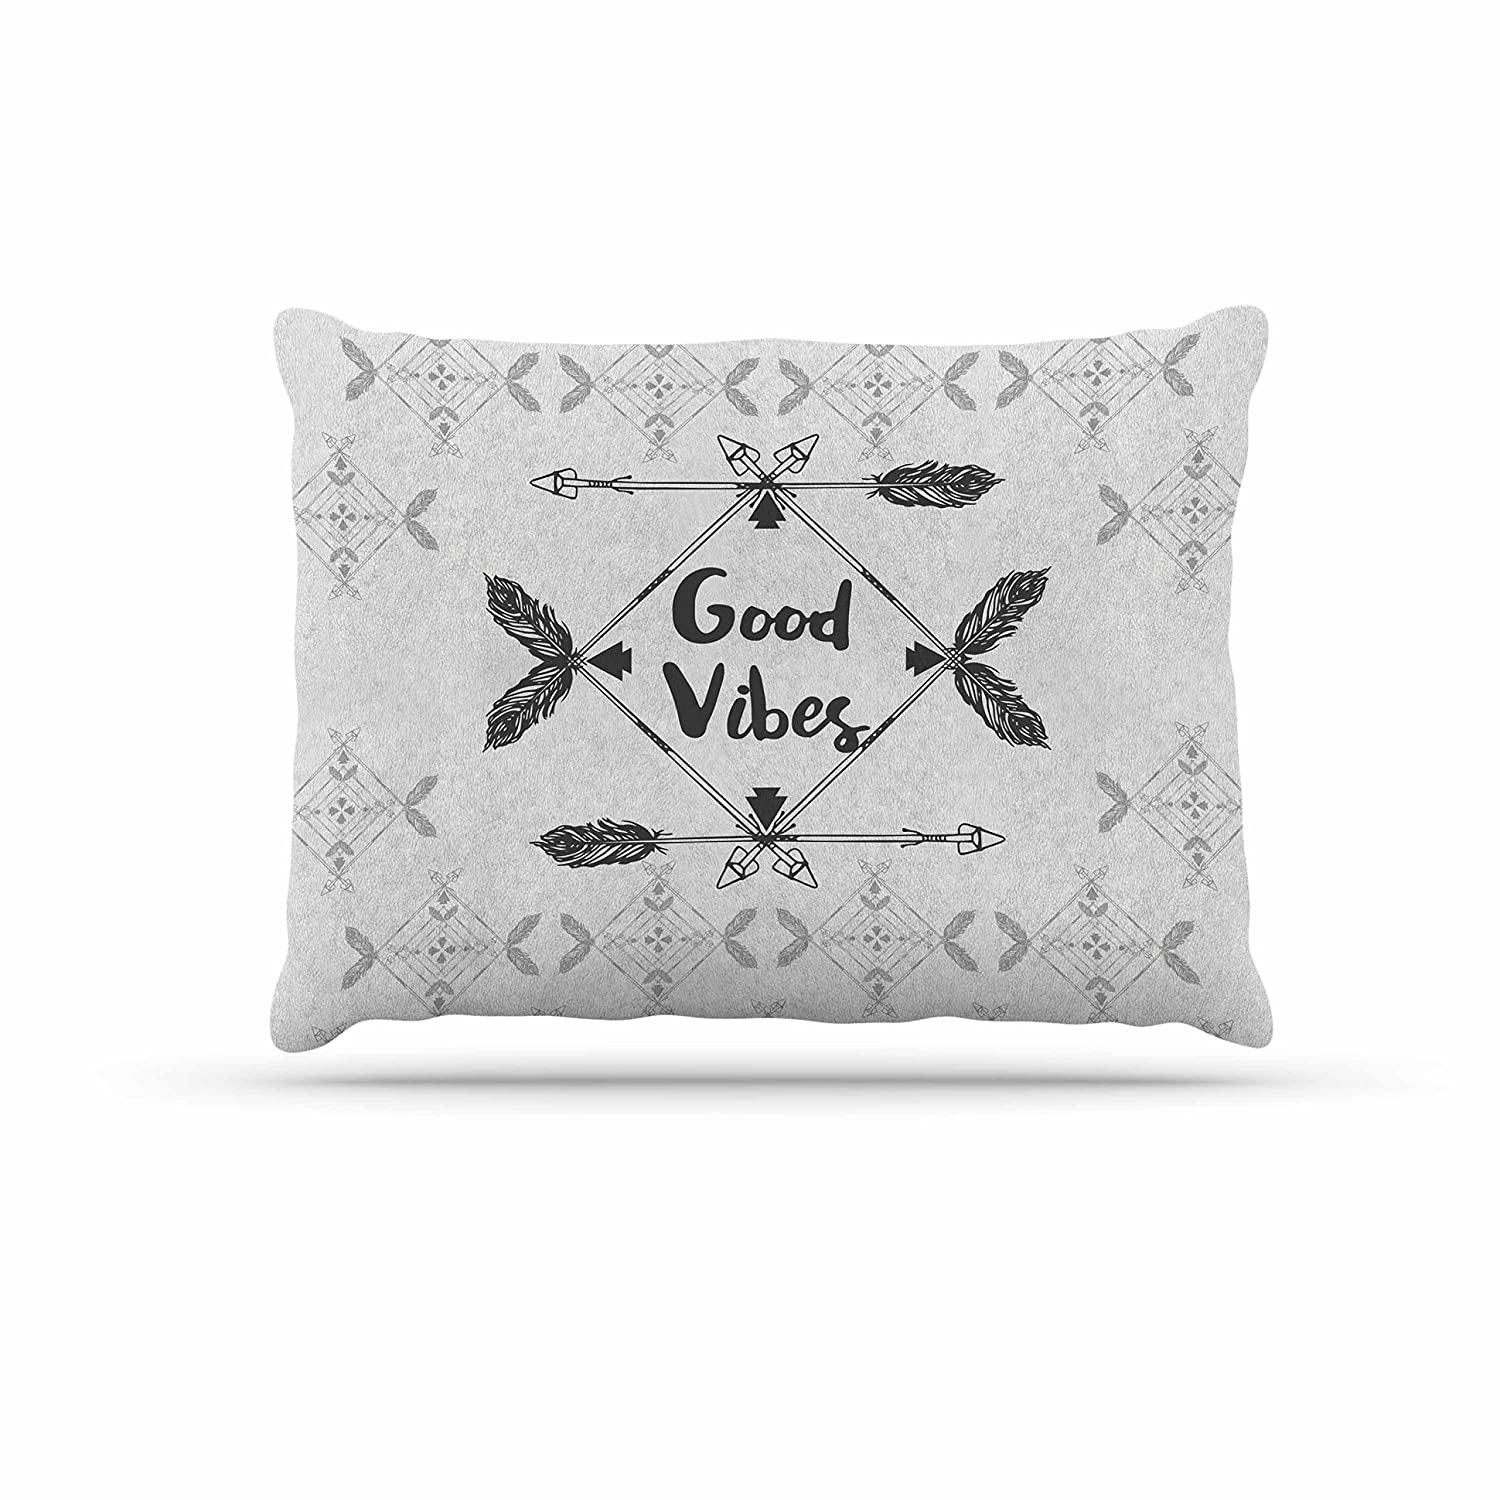 KESS InHouse Famenxt Merry & Bright Holiday Typography Dog Bed, 50  x 40